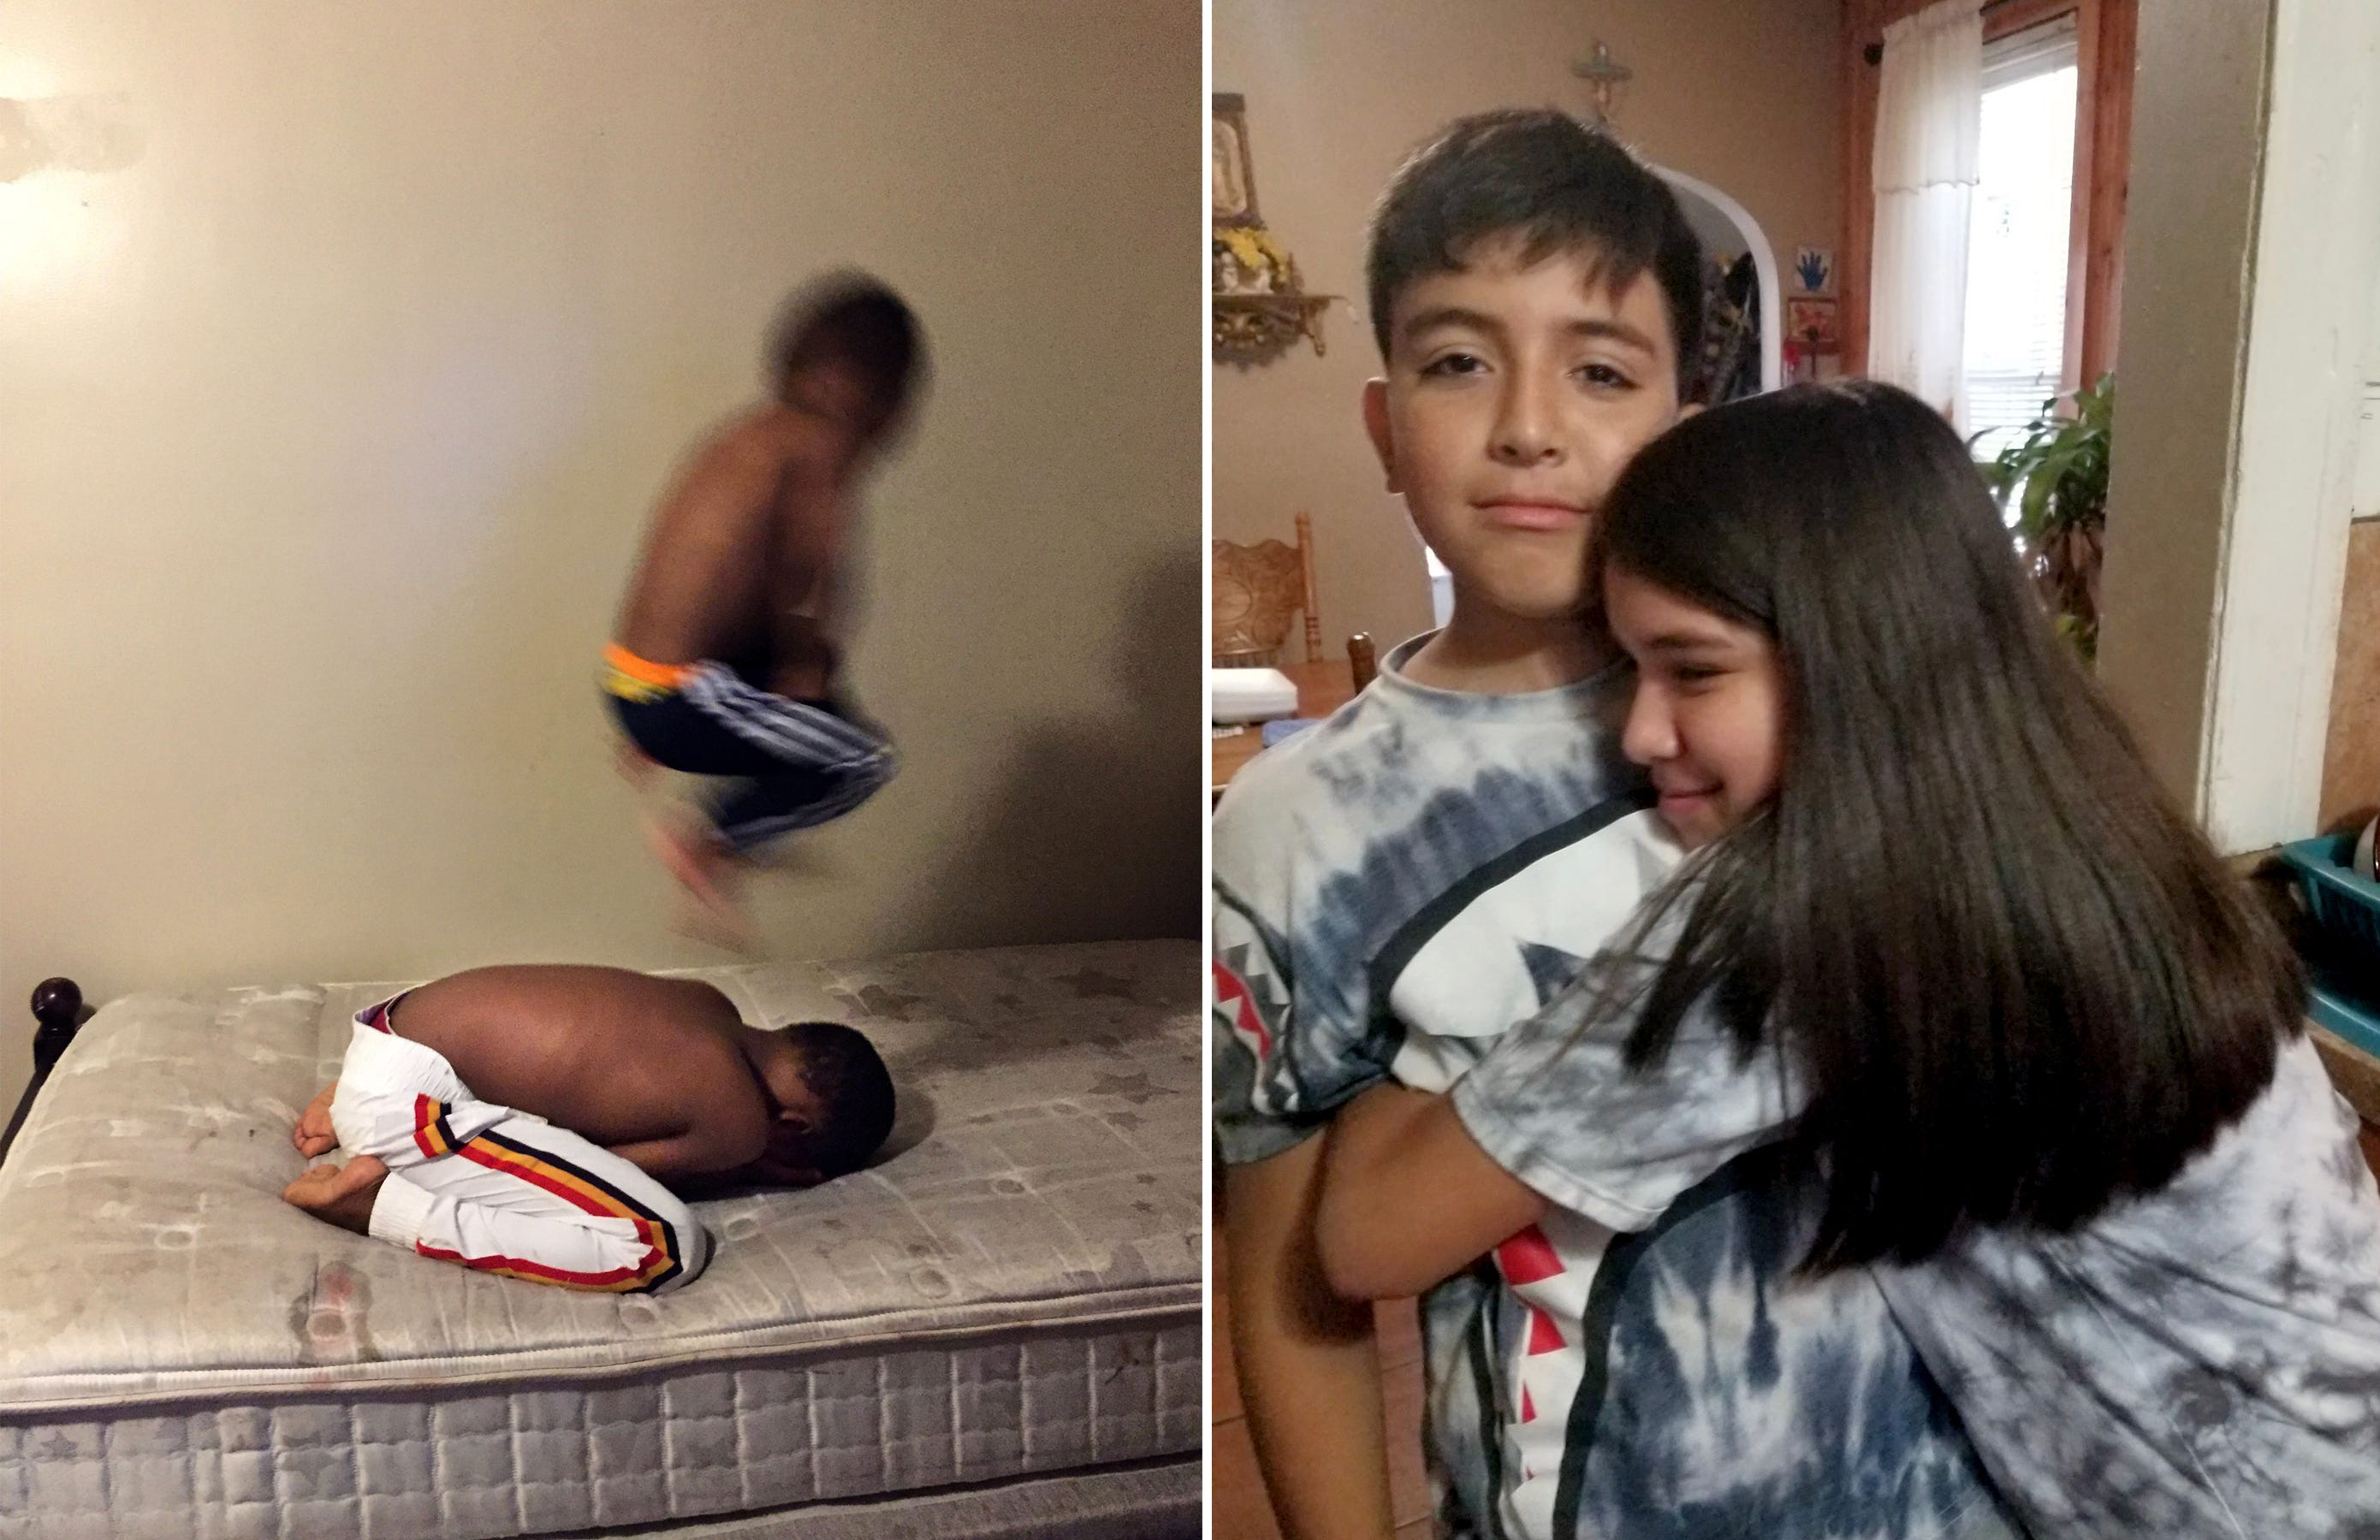 Left: I tried to capture a decisive moment of my nephews,  Logan, 4, and Tevin, 9, playing leapfrog at home after seeing a photograph of a man jumping across a puddle made by French photographer Henri Cartier-Bresson. Right: As my mom is cooking, my sister Juliana Delarosa, 14, hugs our brother Carlos Delarosa, 13, in our home in Detroit on June 4, 2020. Because it's rare to hug my siblings, my mom wants to save this picture.